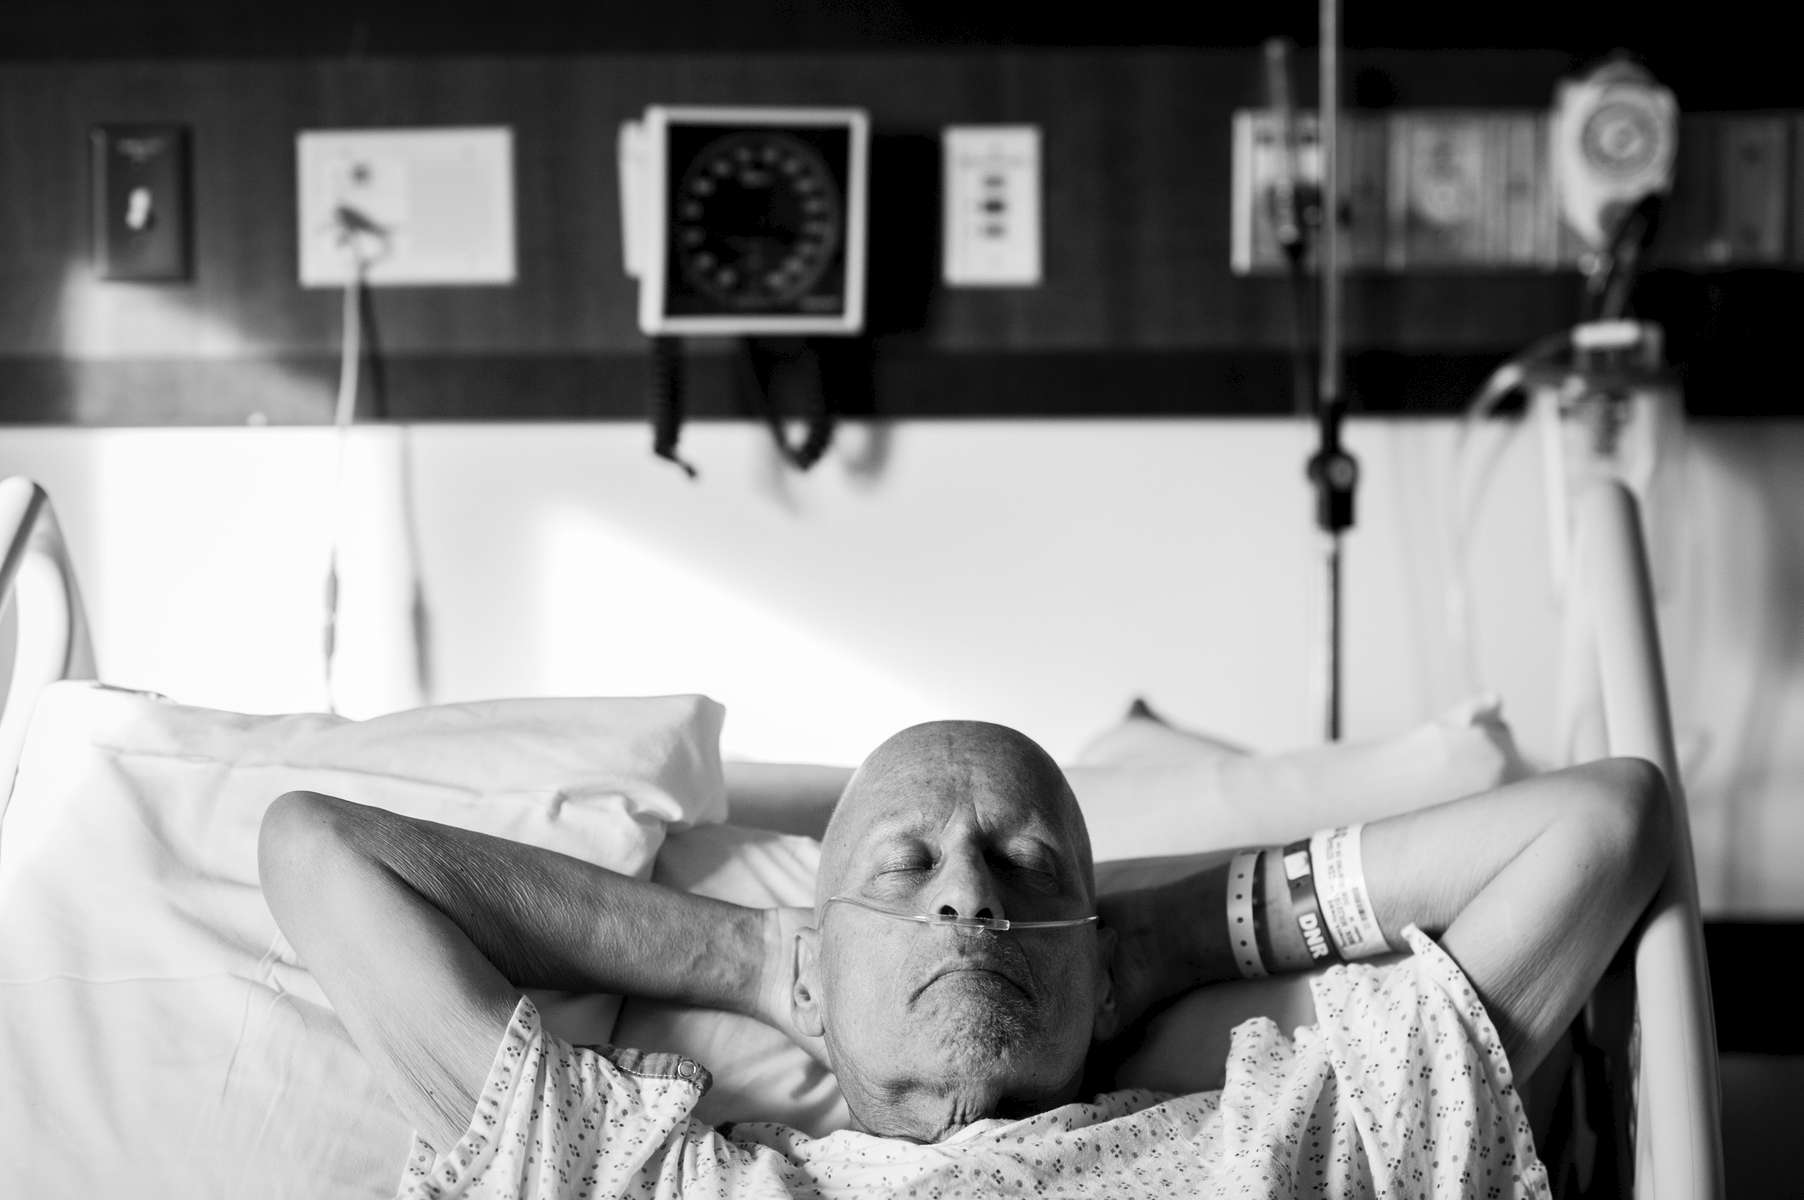 The air felt strange at the hospital that day. This photograph was taken moments after the nurse attached a Do Not Resuscitate bracelet to my father's left wrist. The decision had been made, and if the time was to come, Dad got to make that decision for himself. This brought a sense of relief, in a way, because the pain was almost over, because he was no longer living a life of quality.